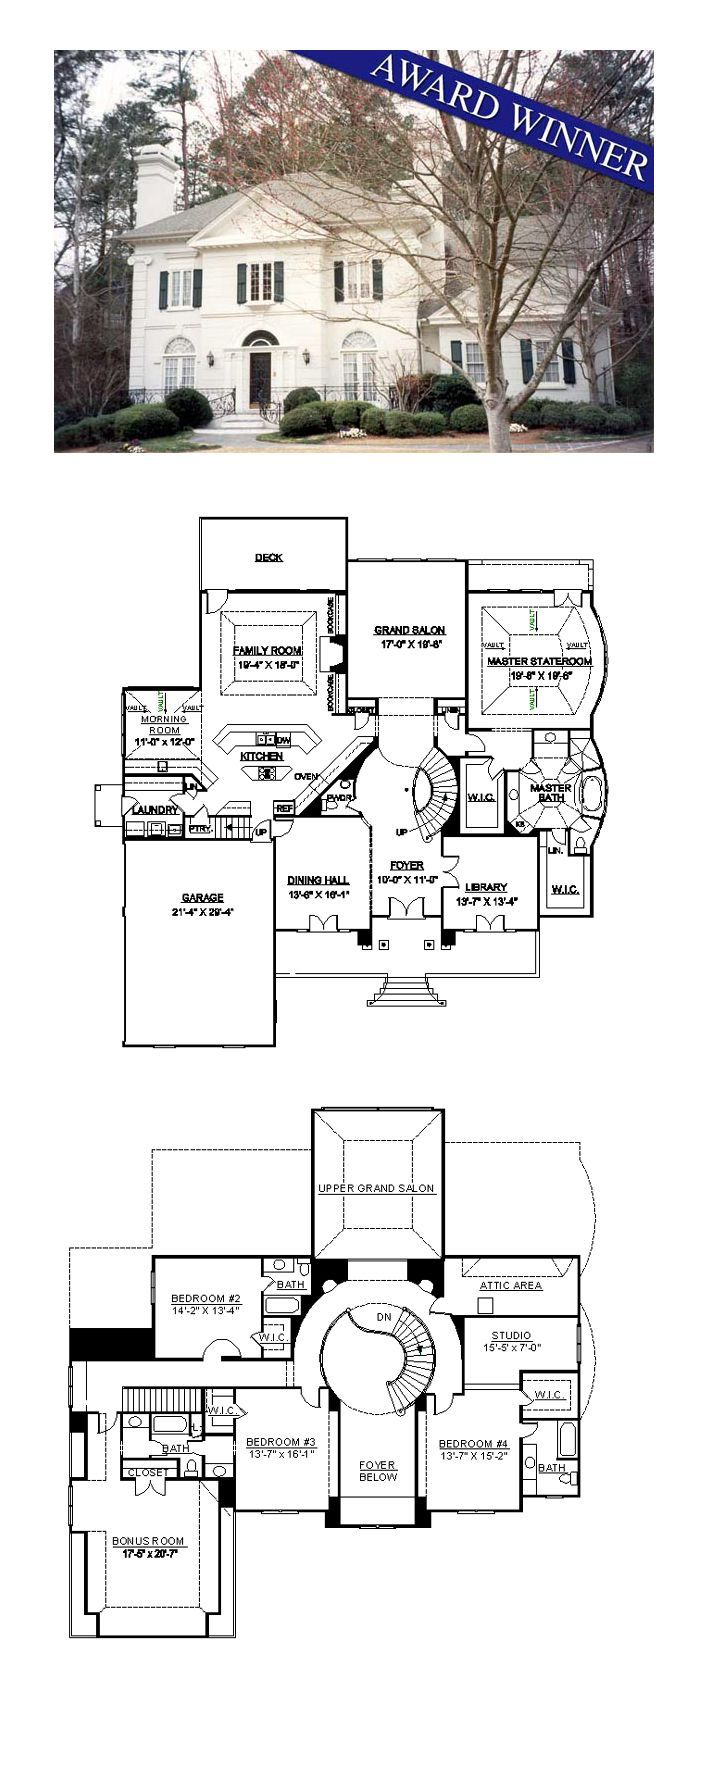 Greek revival house plan 98252 total living area 4364 for One story greek revival house plans